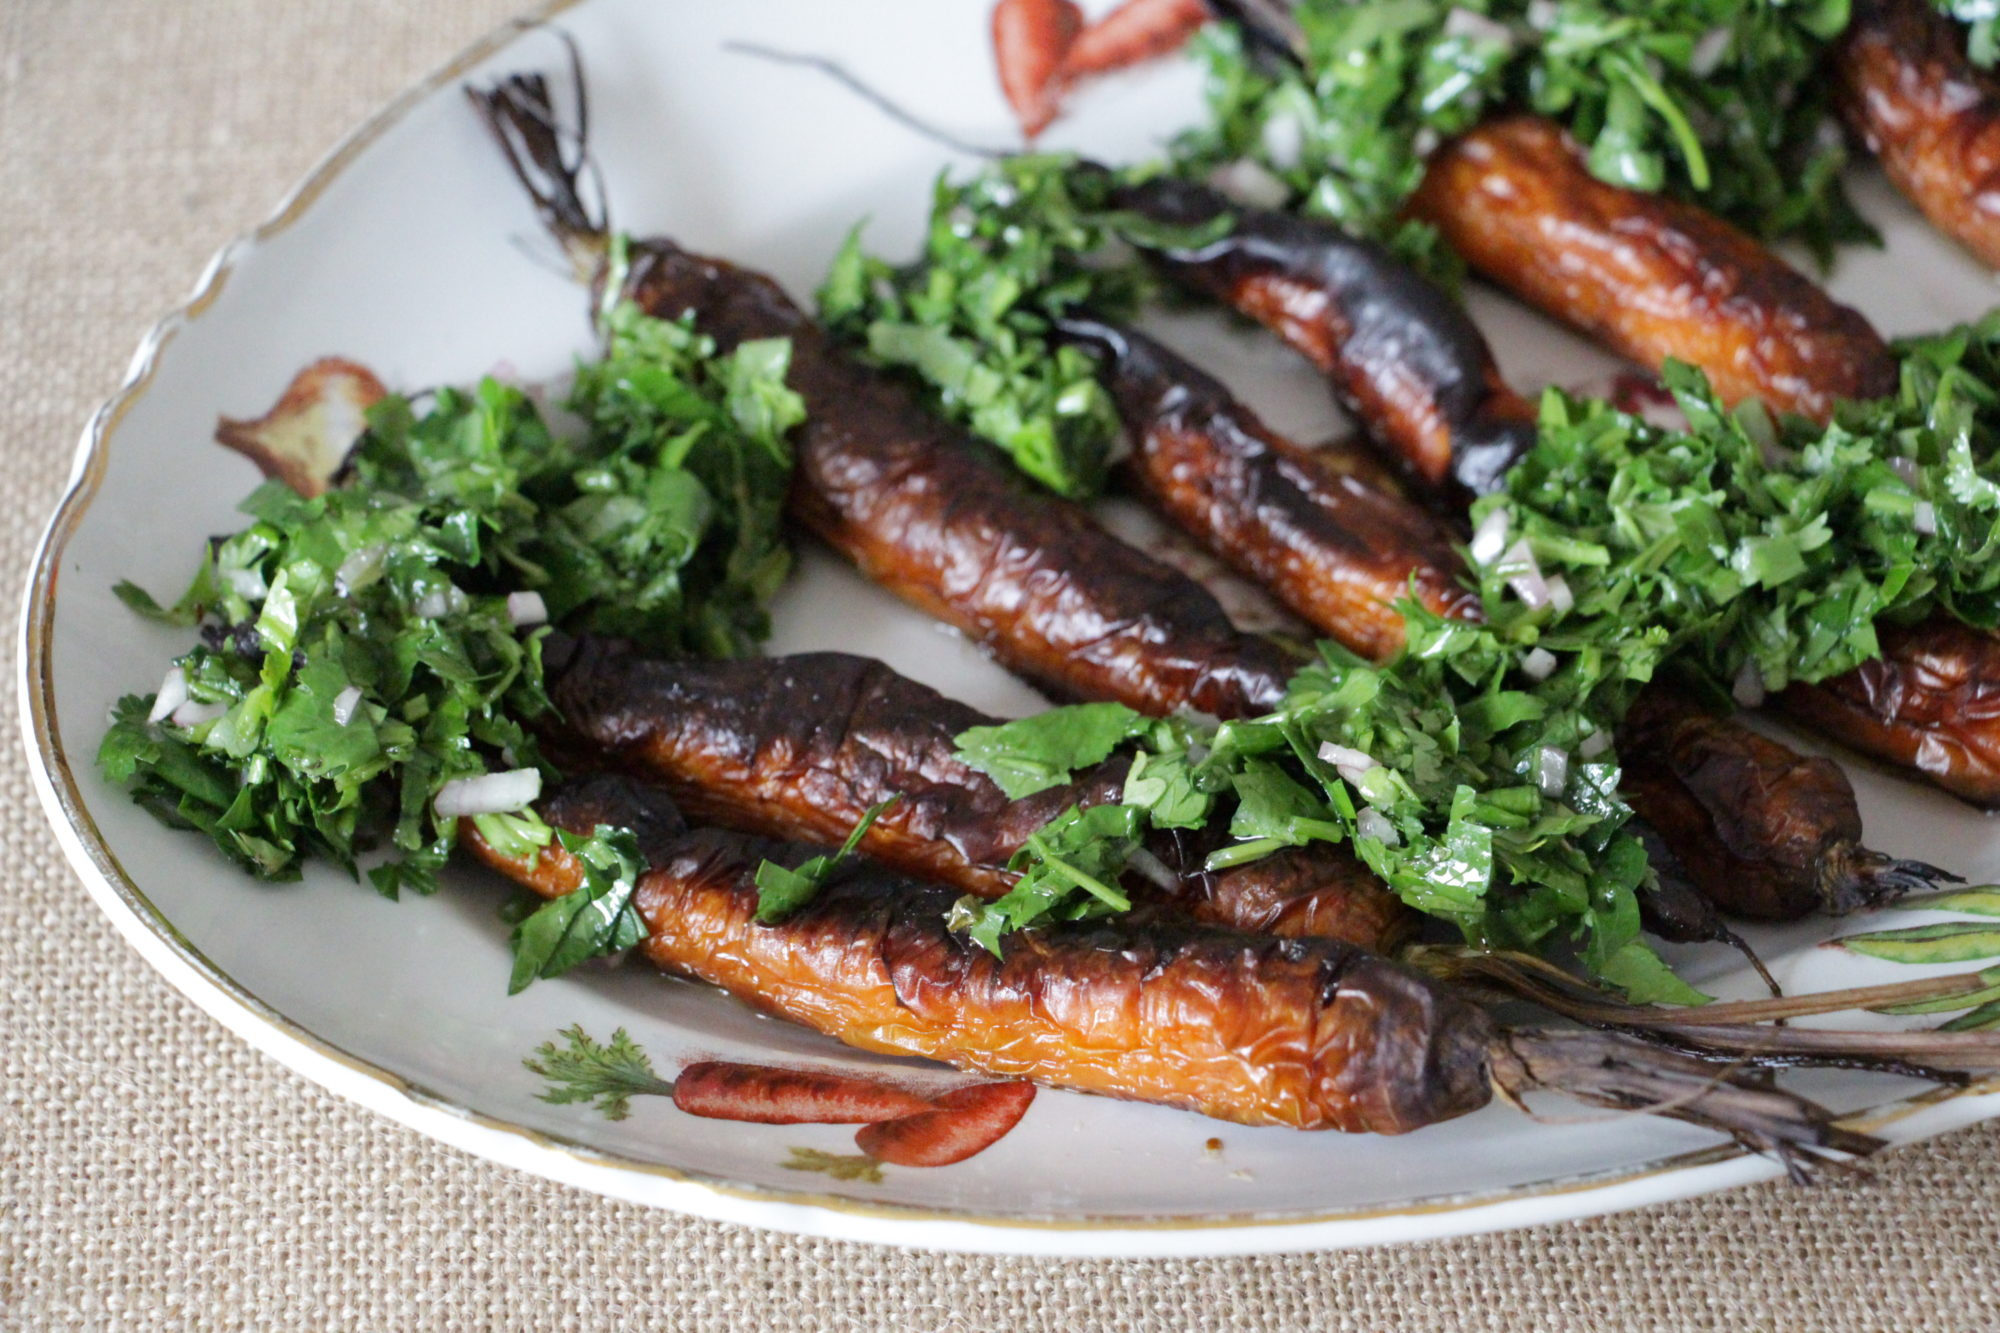 carrots with chimichurri